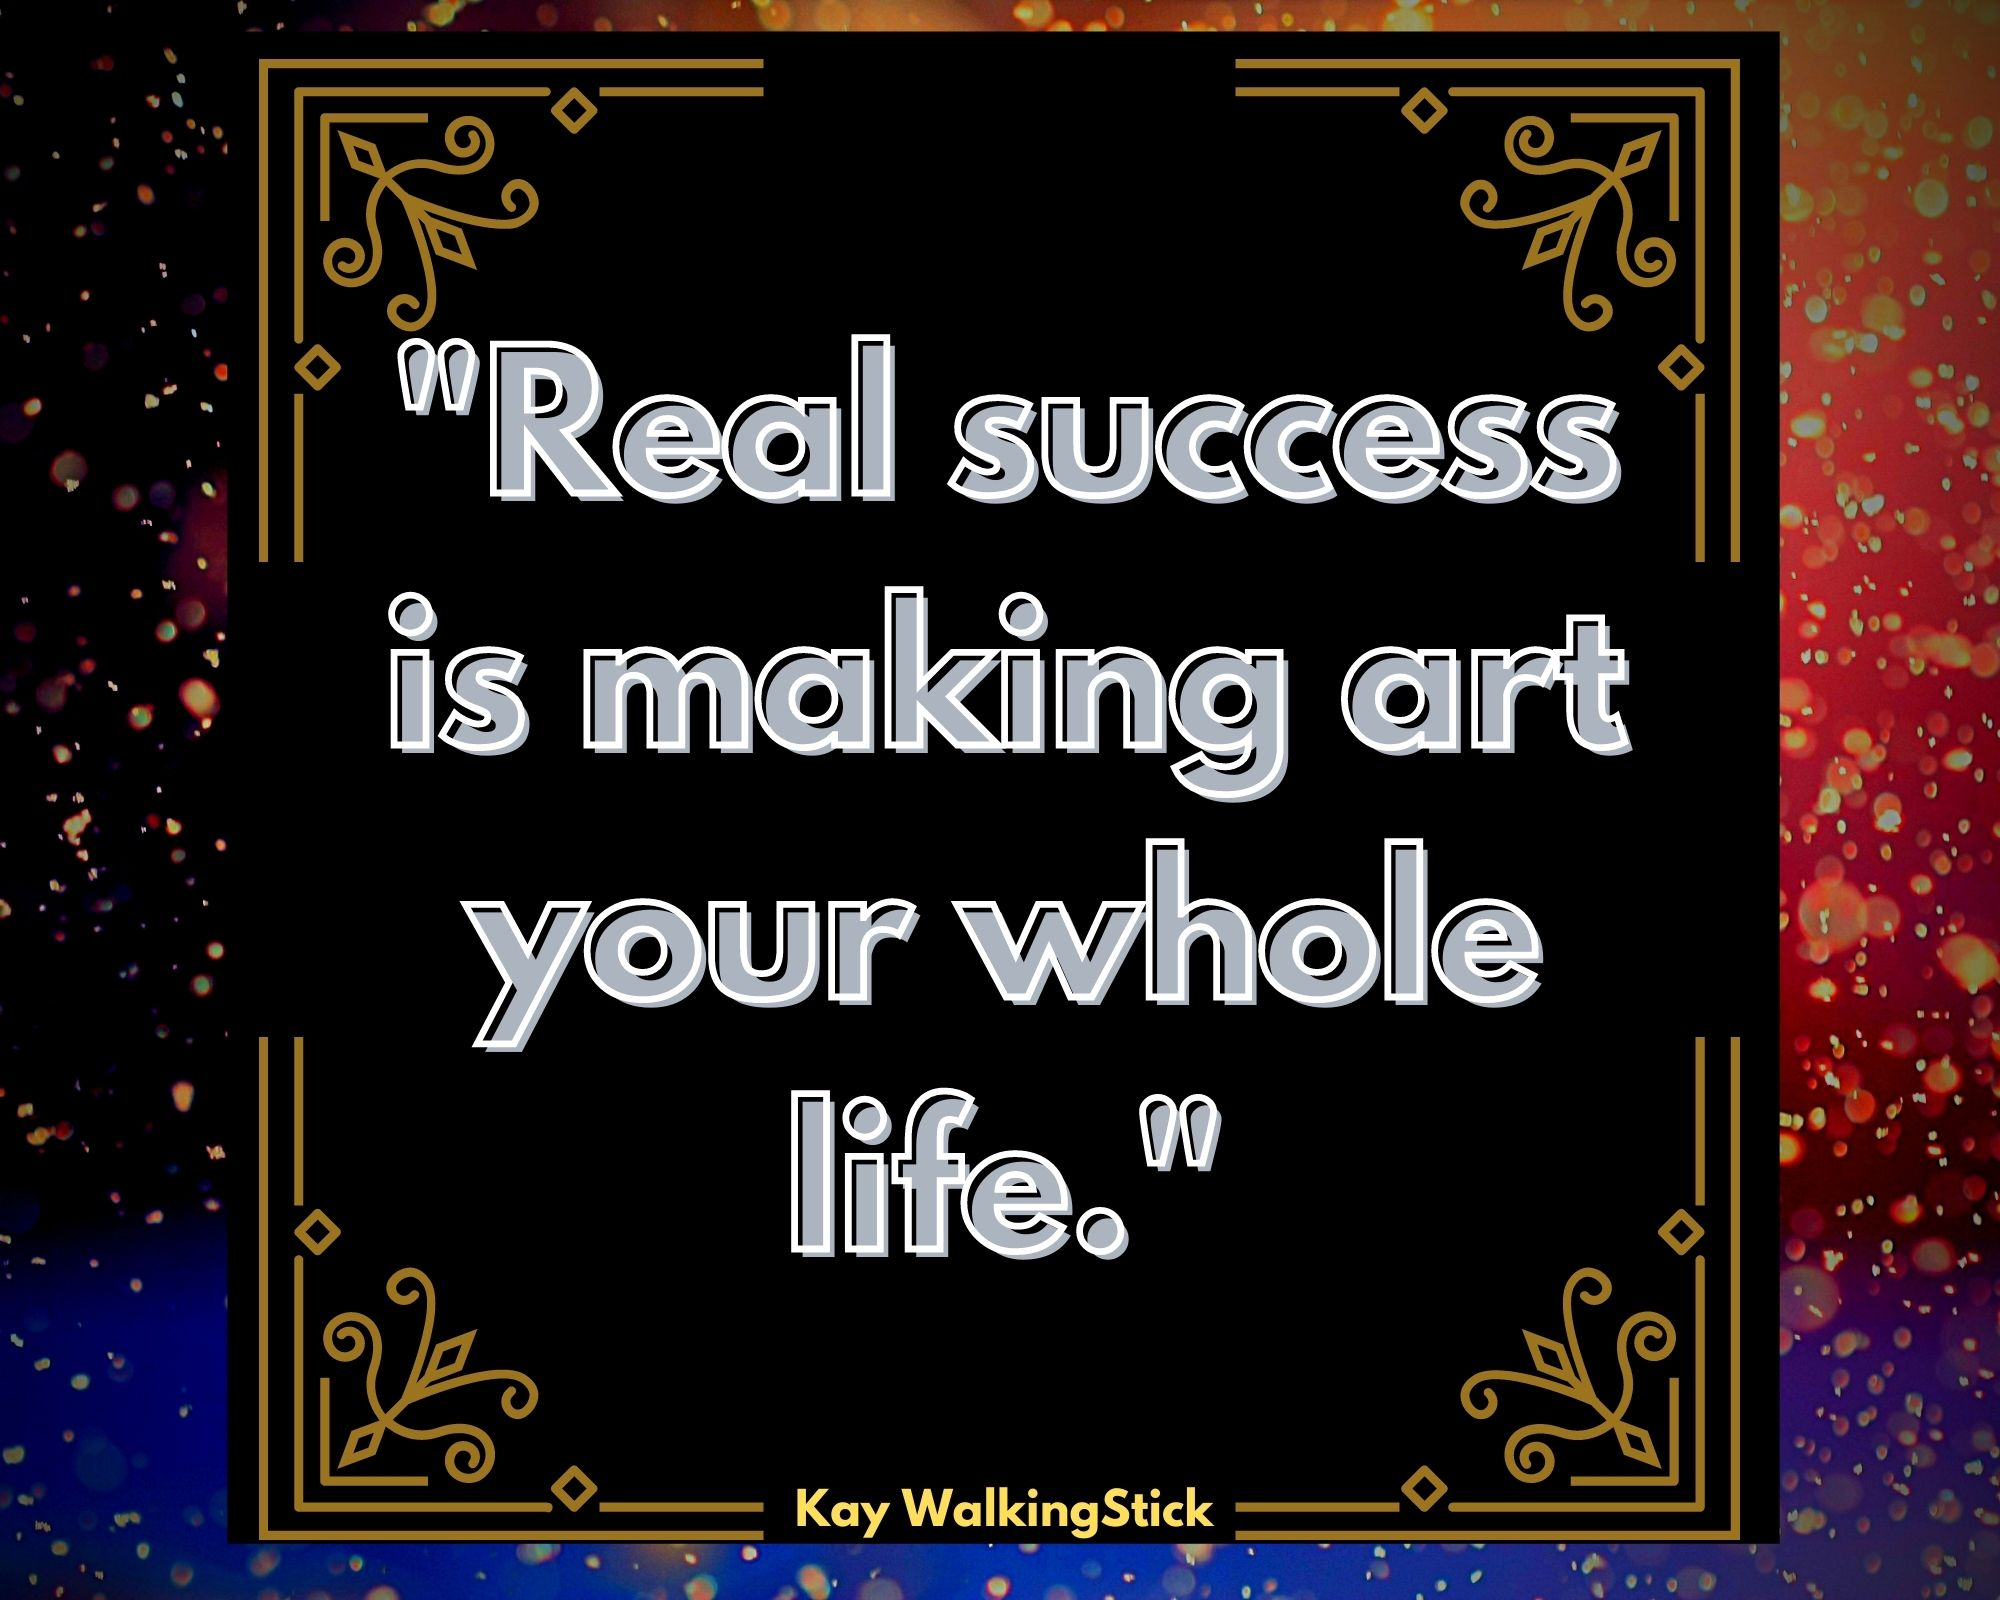 Kay WalkingStick Quotes